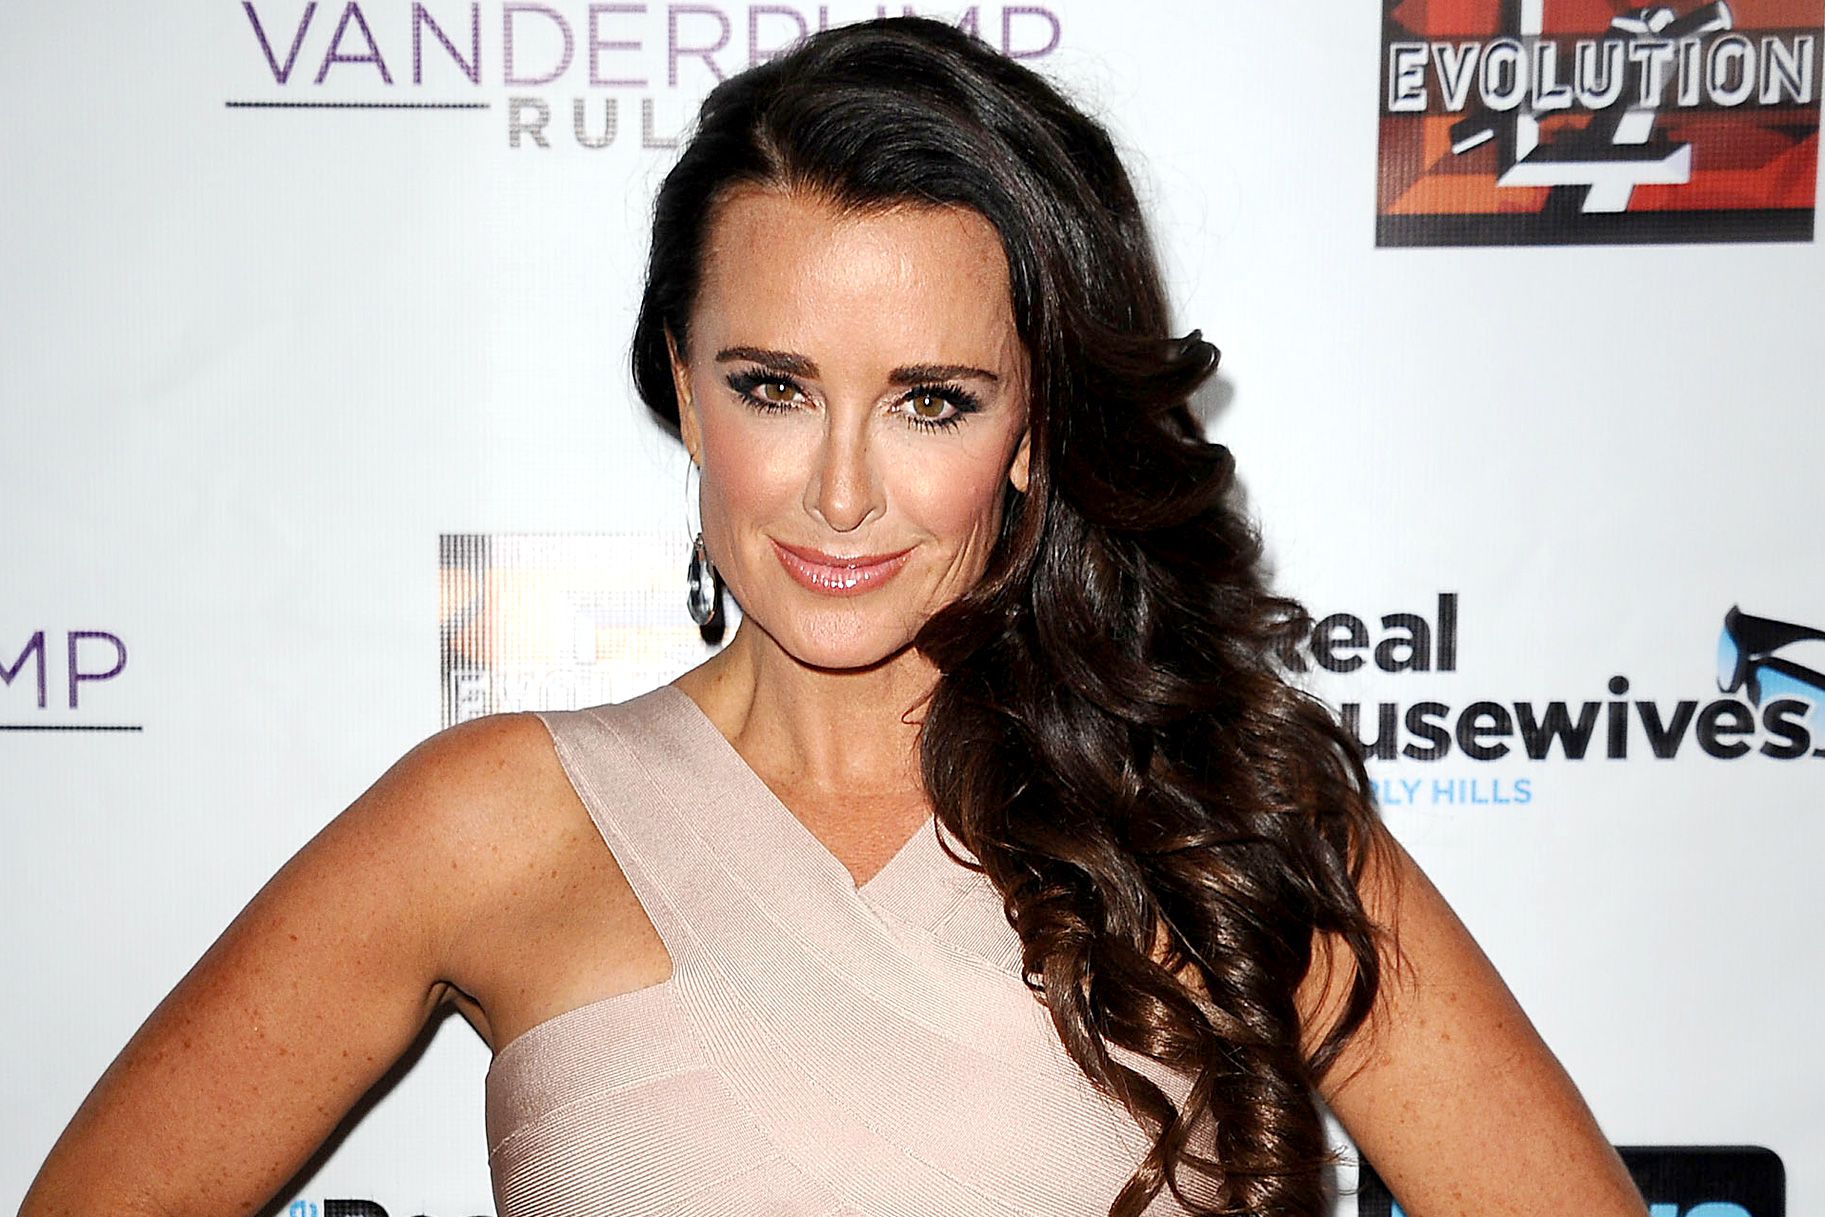 Kyle Richards Family Photos, Husband, Daughters, Net Worth